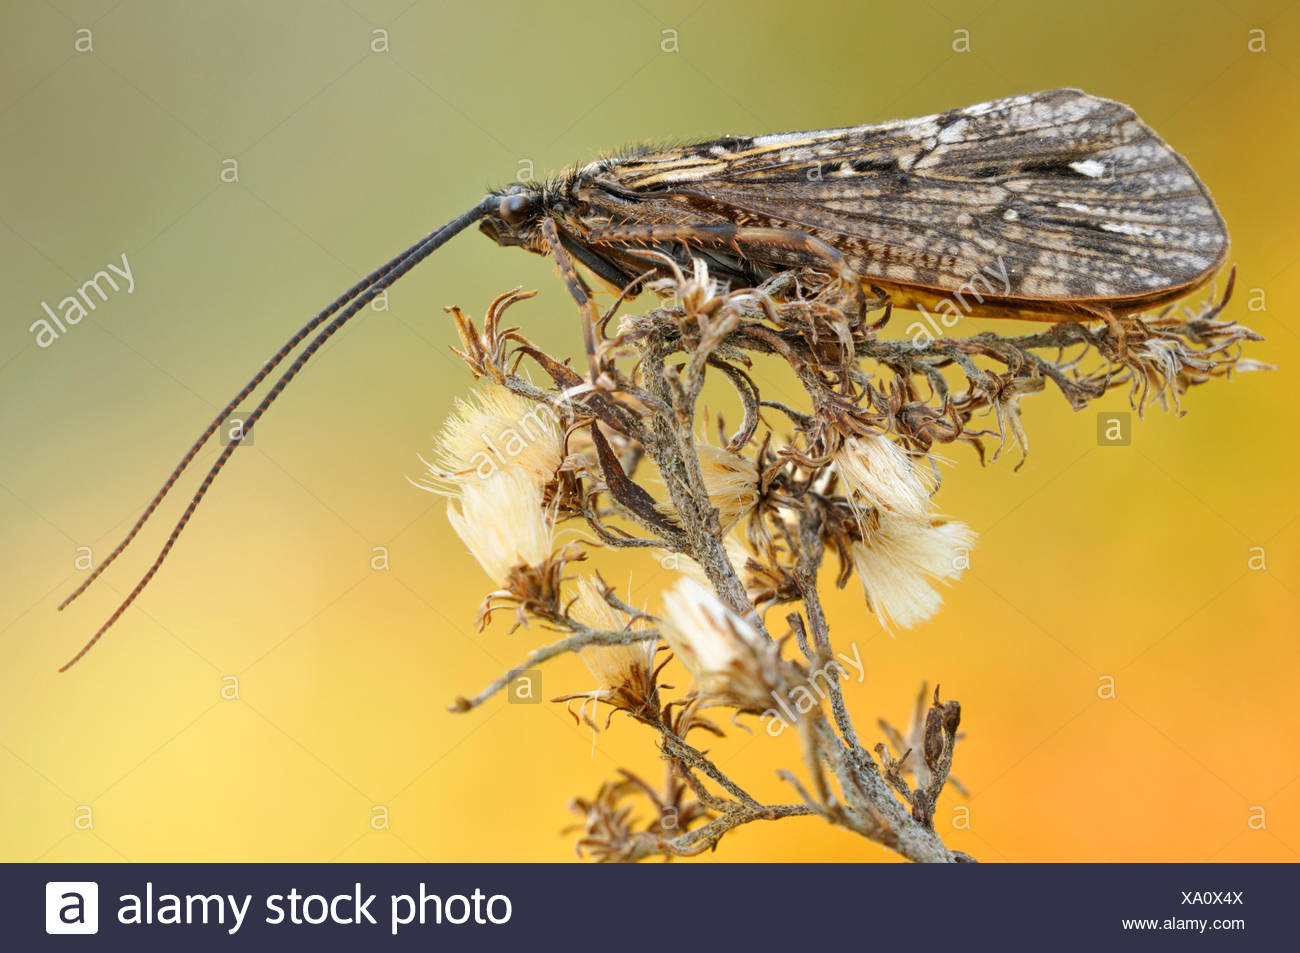 Phryganea bipunctata (Phryganea bipunctata), adult sitting on a thistle, Germany - Stock Image